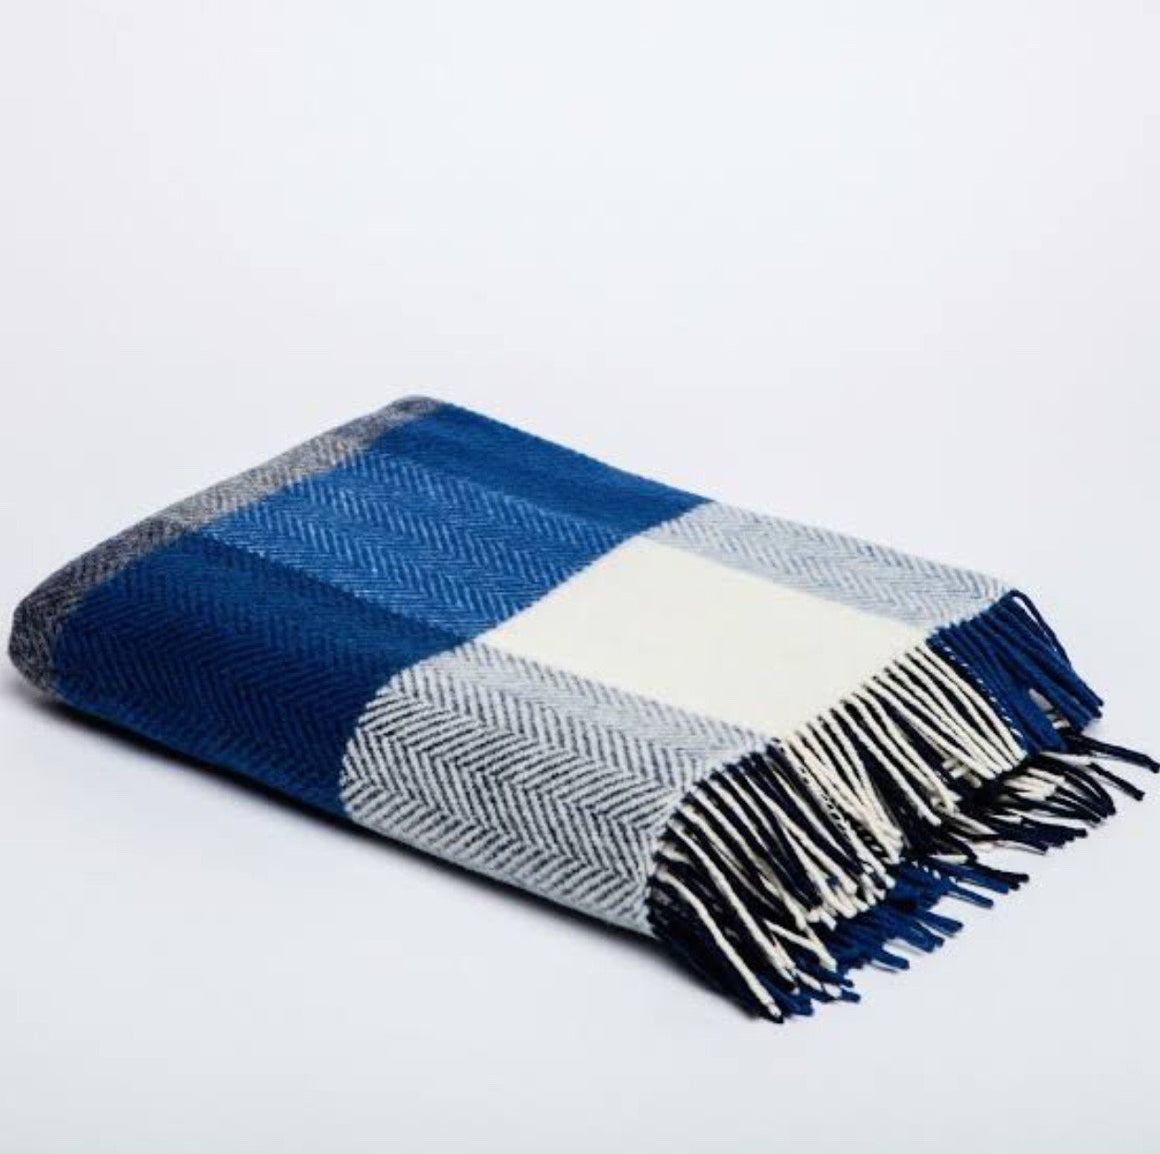 Merino Cashmere Throw - Blue Large Check